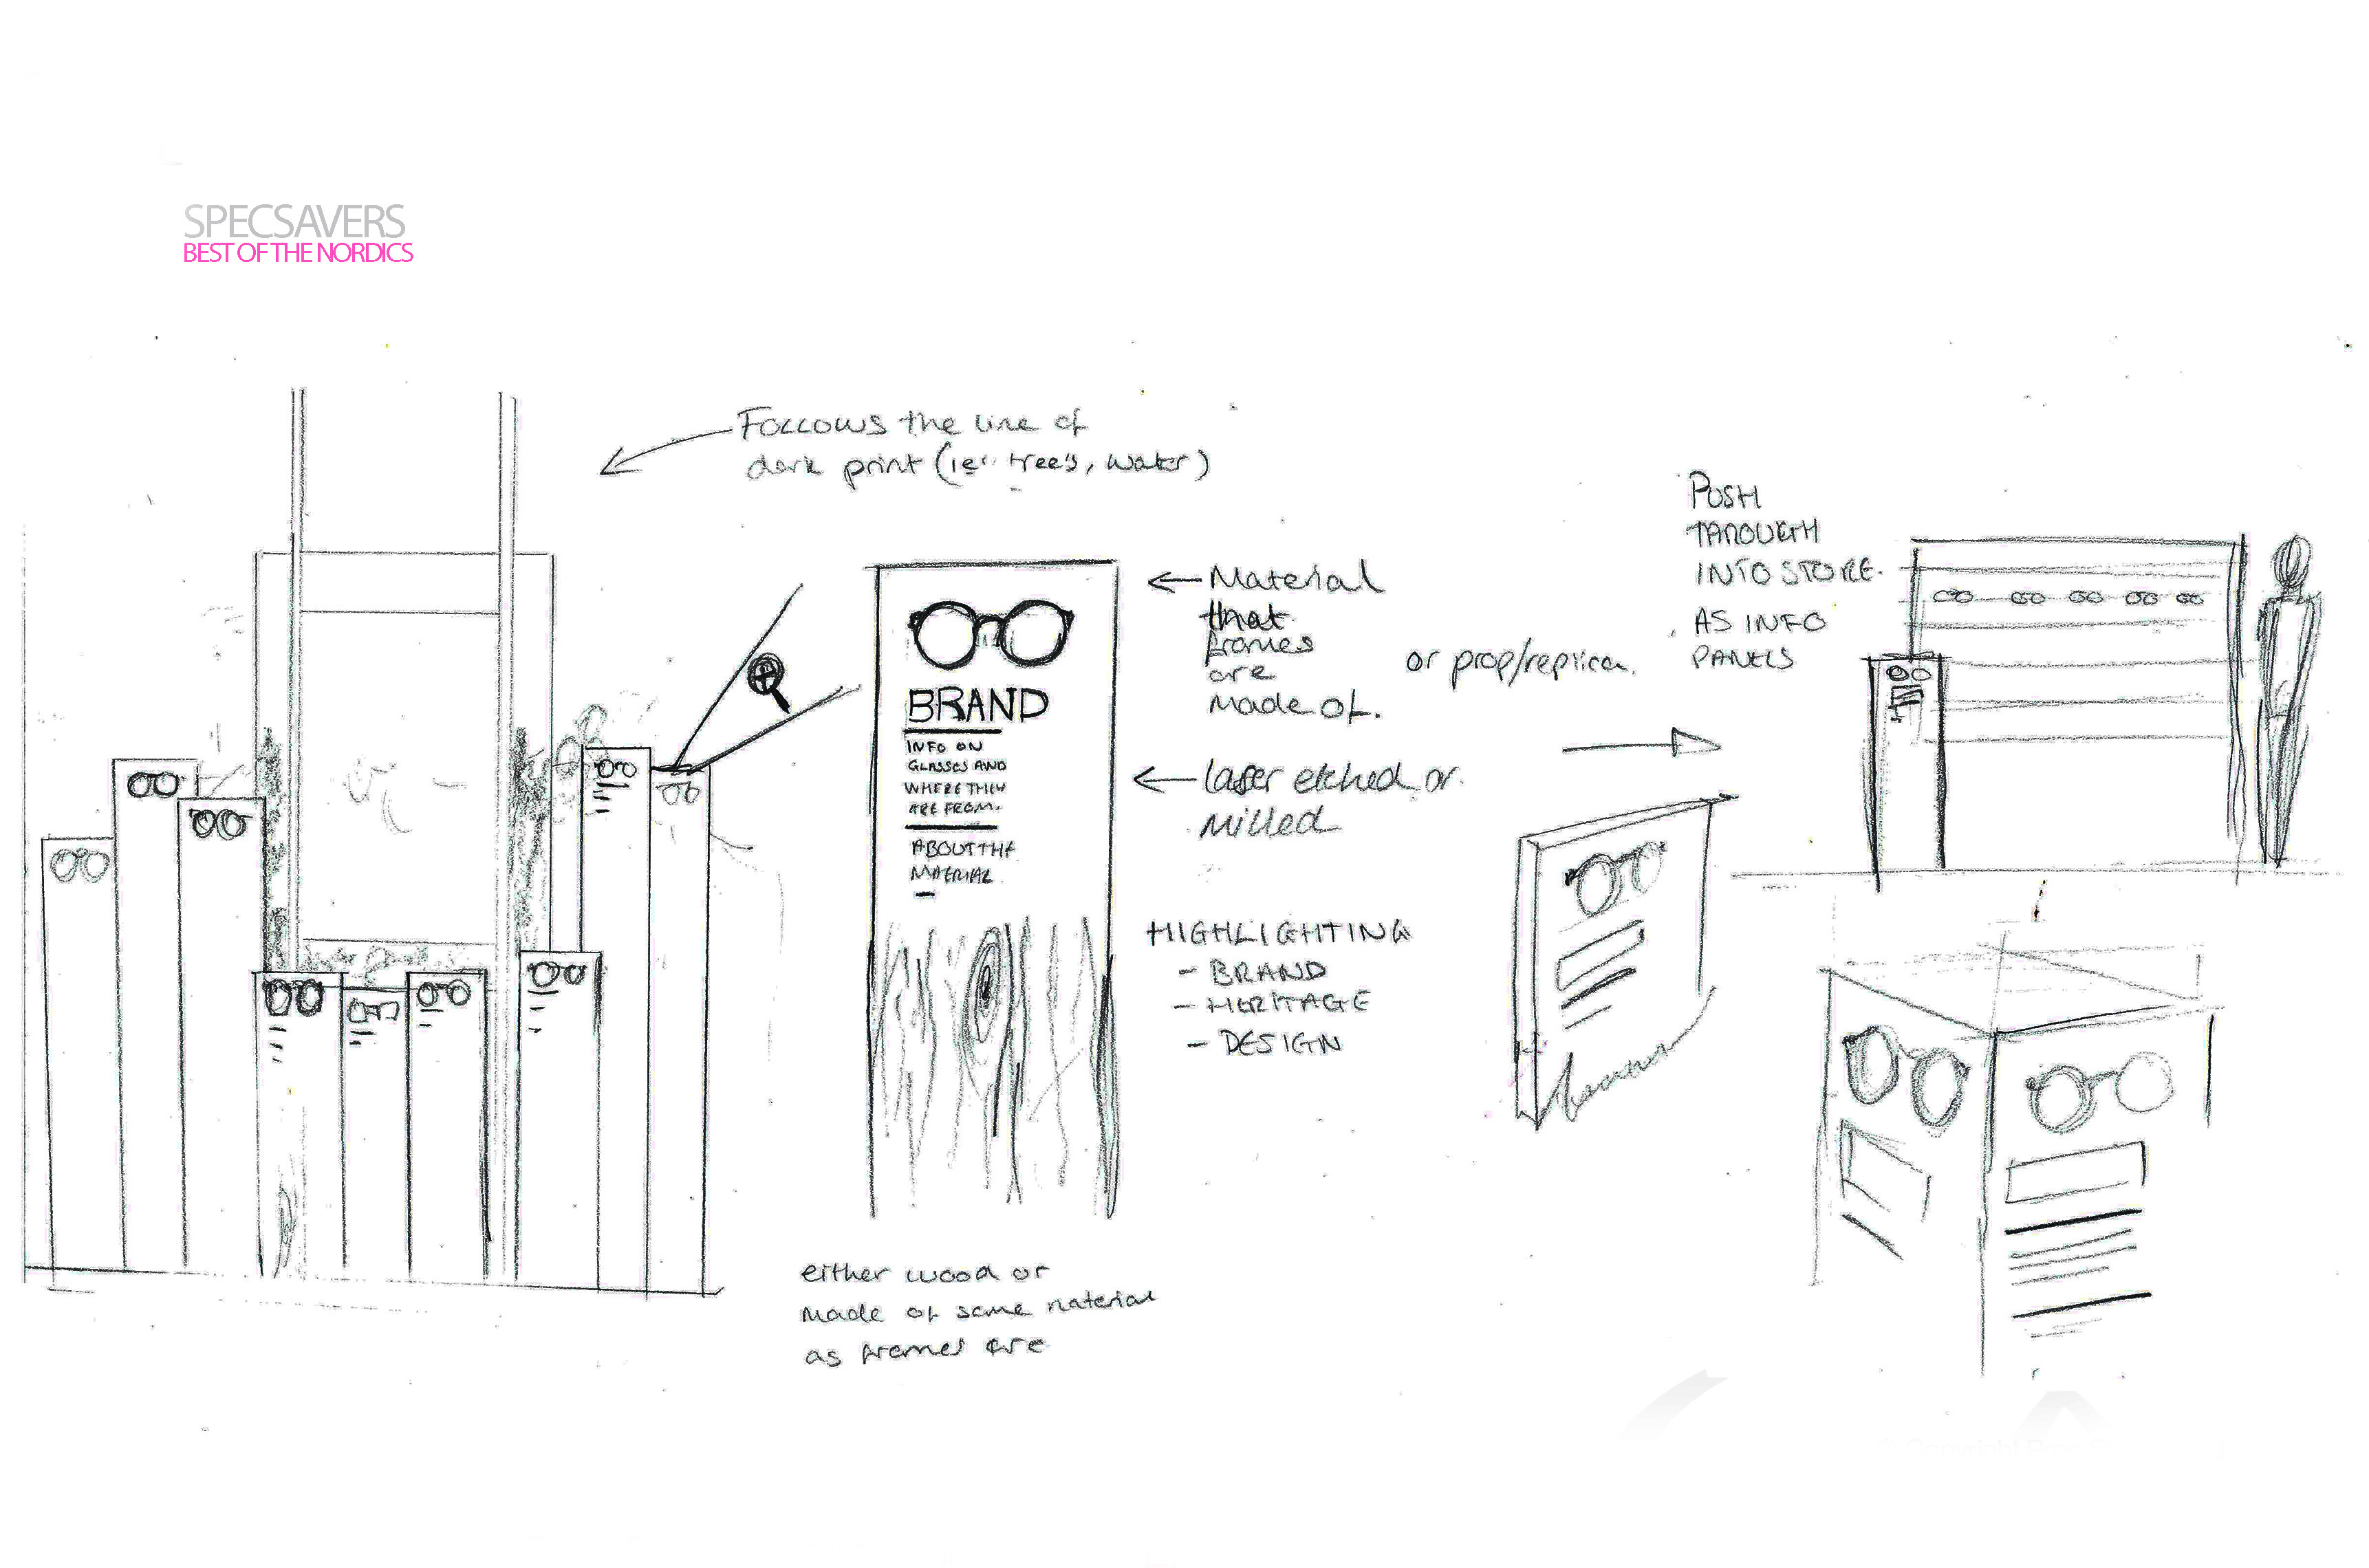 Prop Studios' draft sketches showing concepts for the planks within the window display